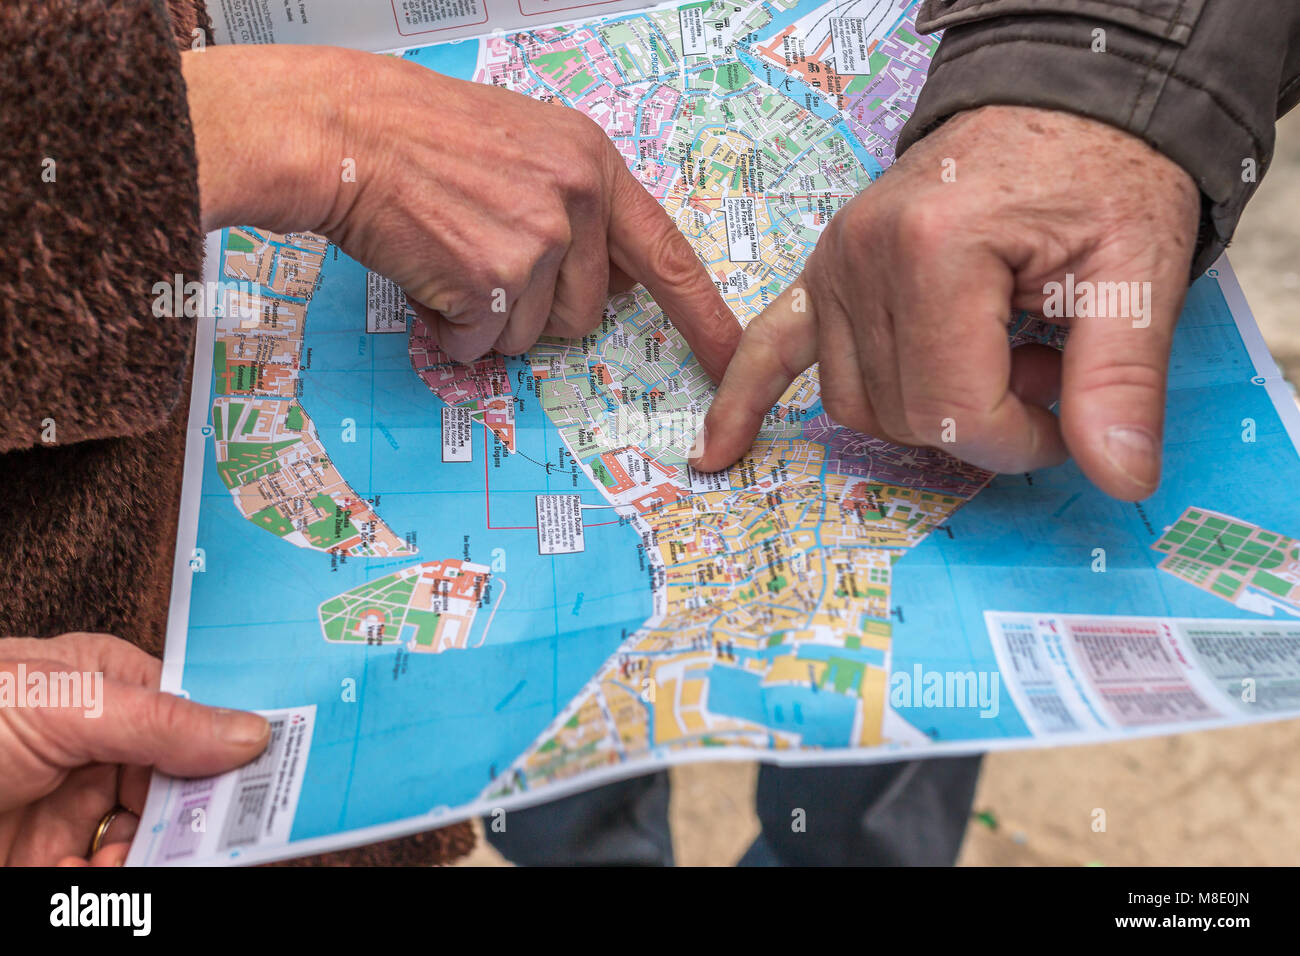 Itinerary and directions conflict - Stock Image